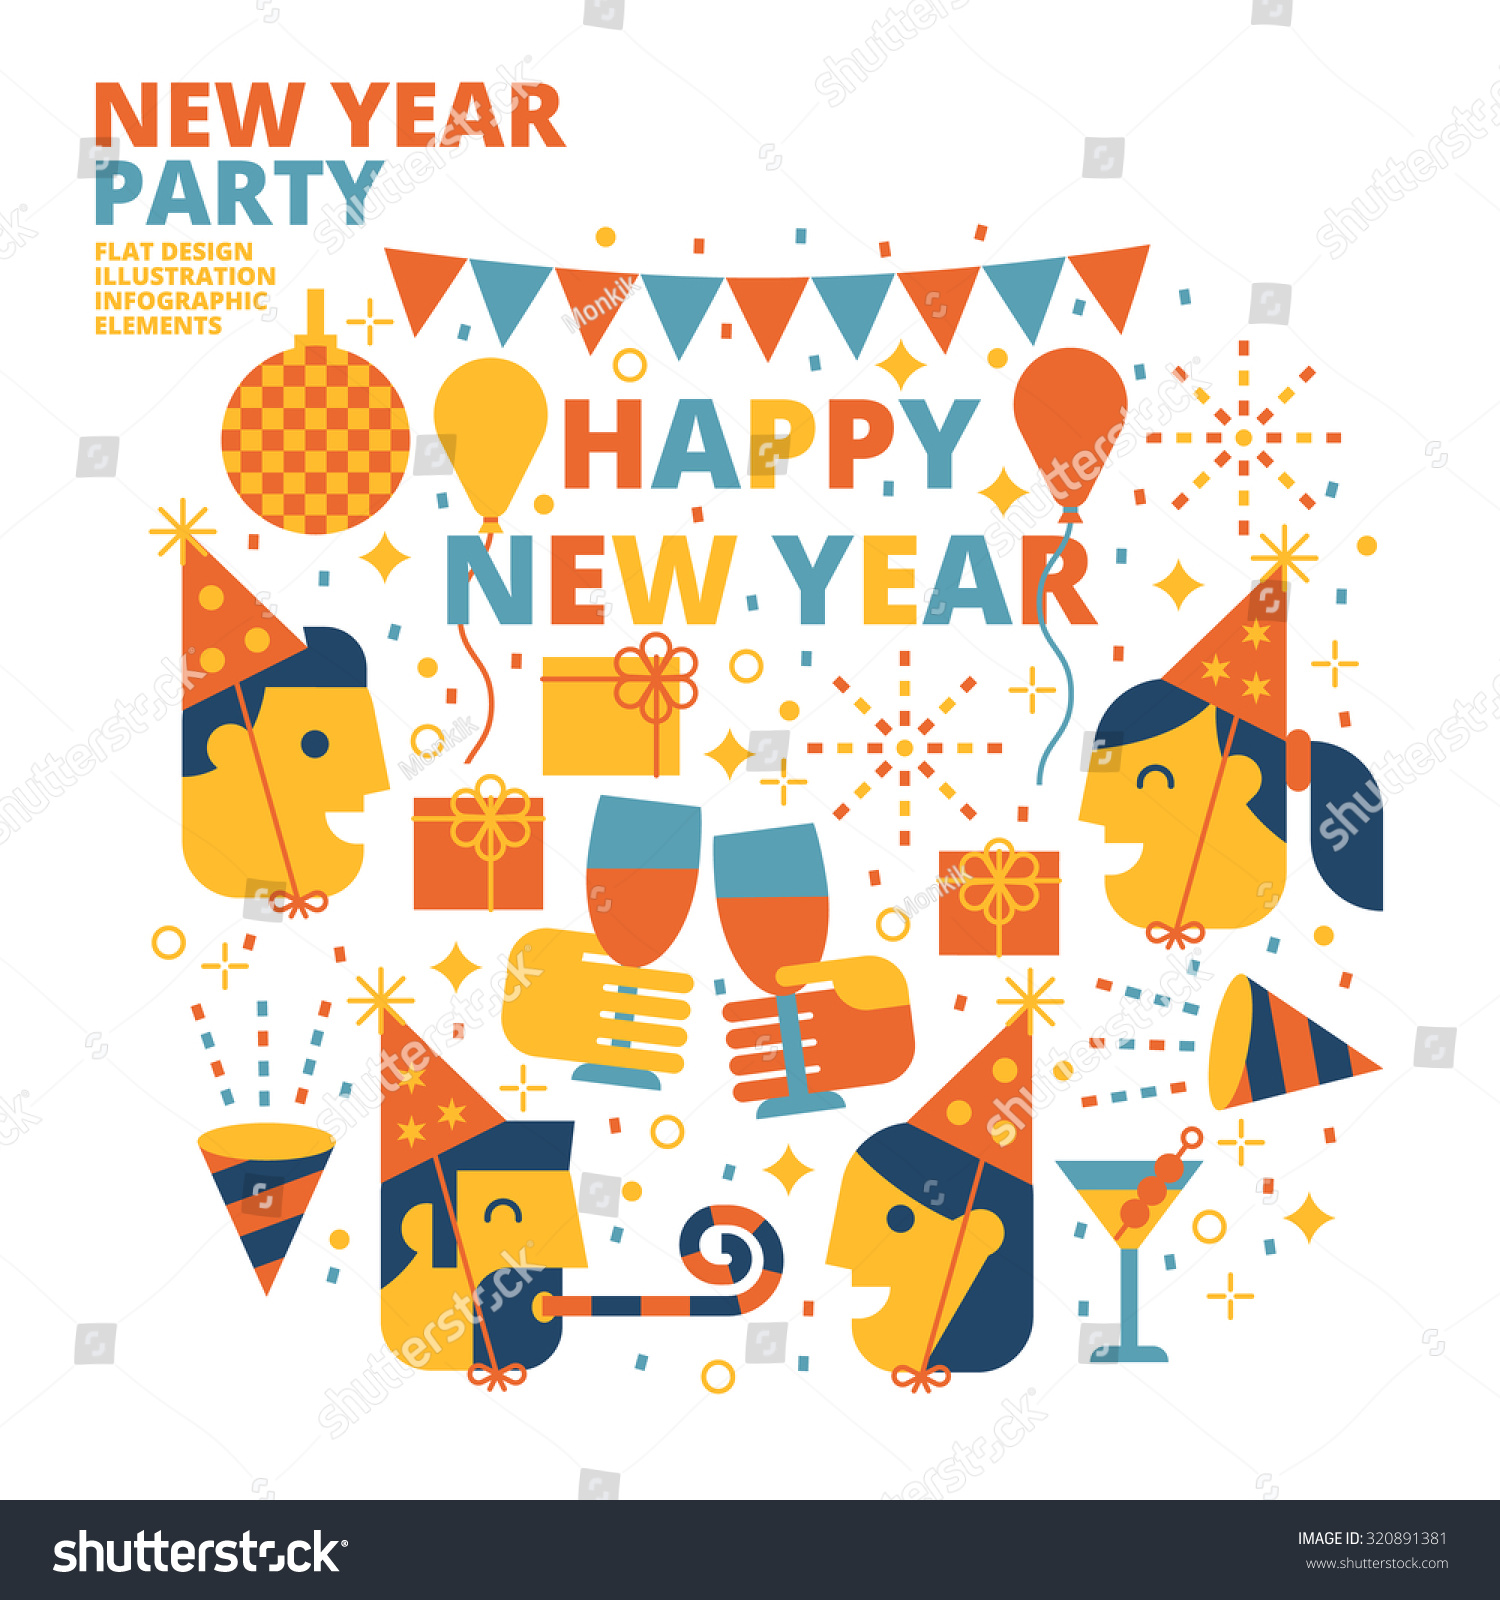 New year party happy new year flat design illustration for Terrace new year party